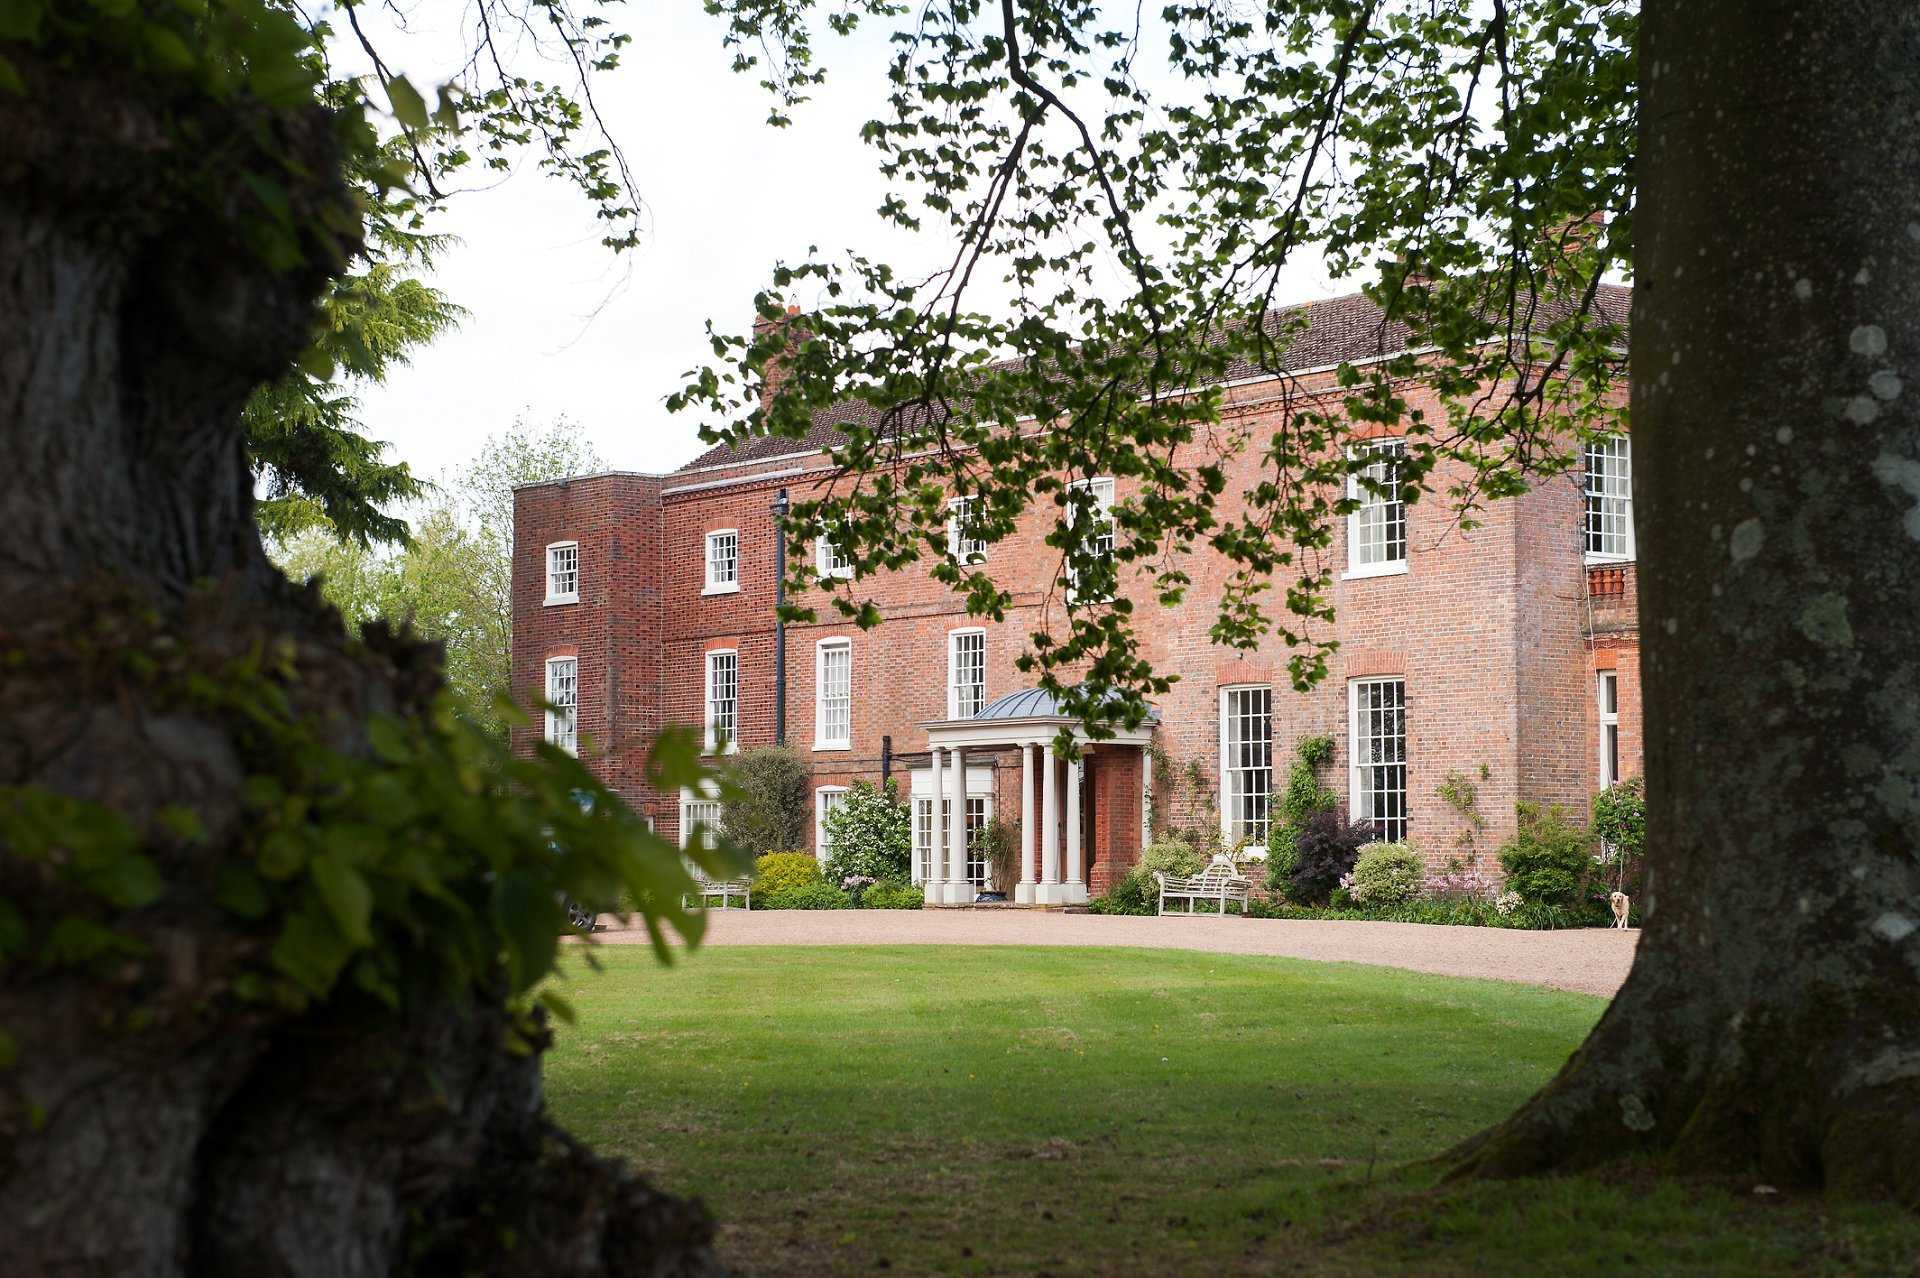 Starborough Manor Wedding Photographer - a stunning 18th century manor house in Marsh Green, near Edenbridge - the perfect location for a Kent country wedding